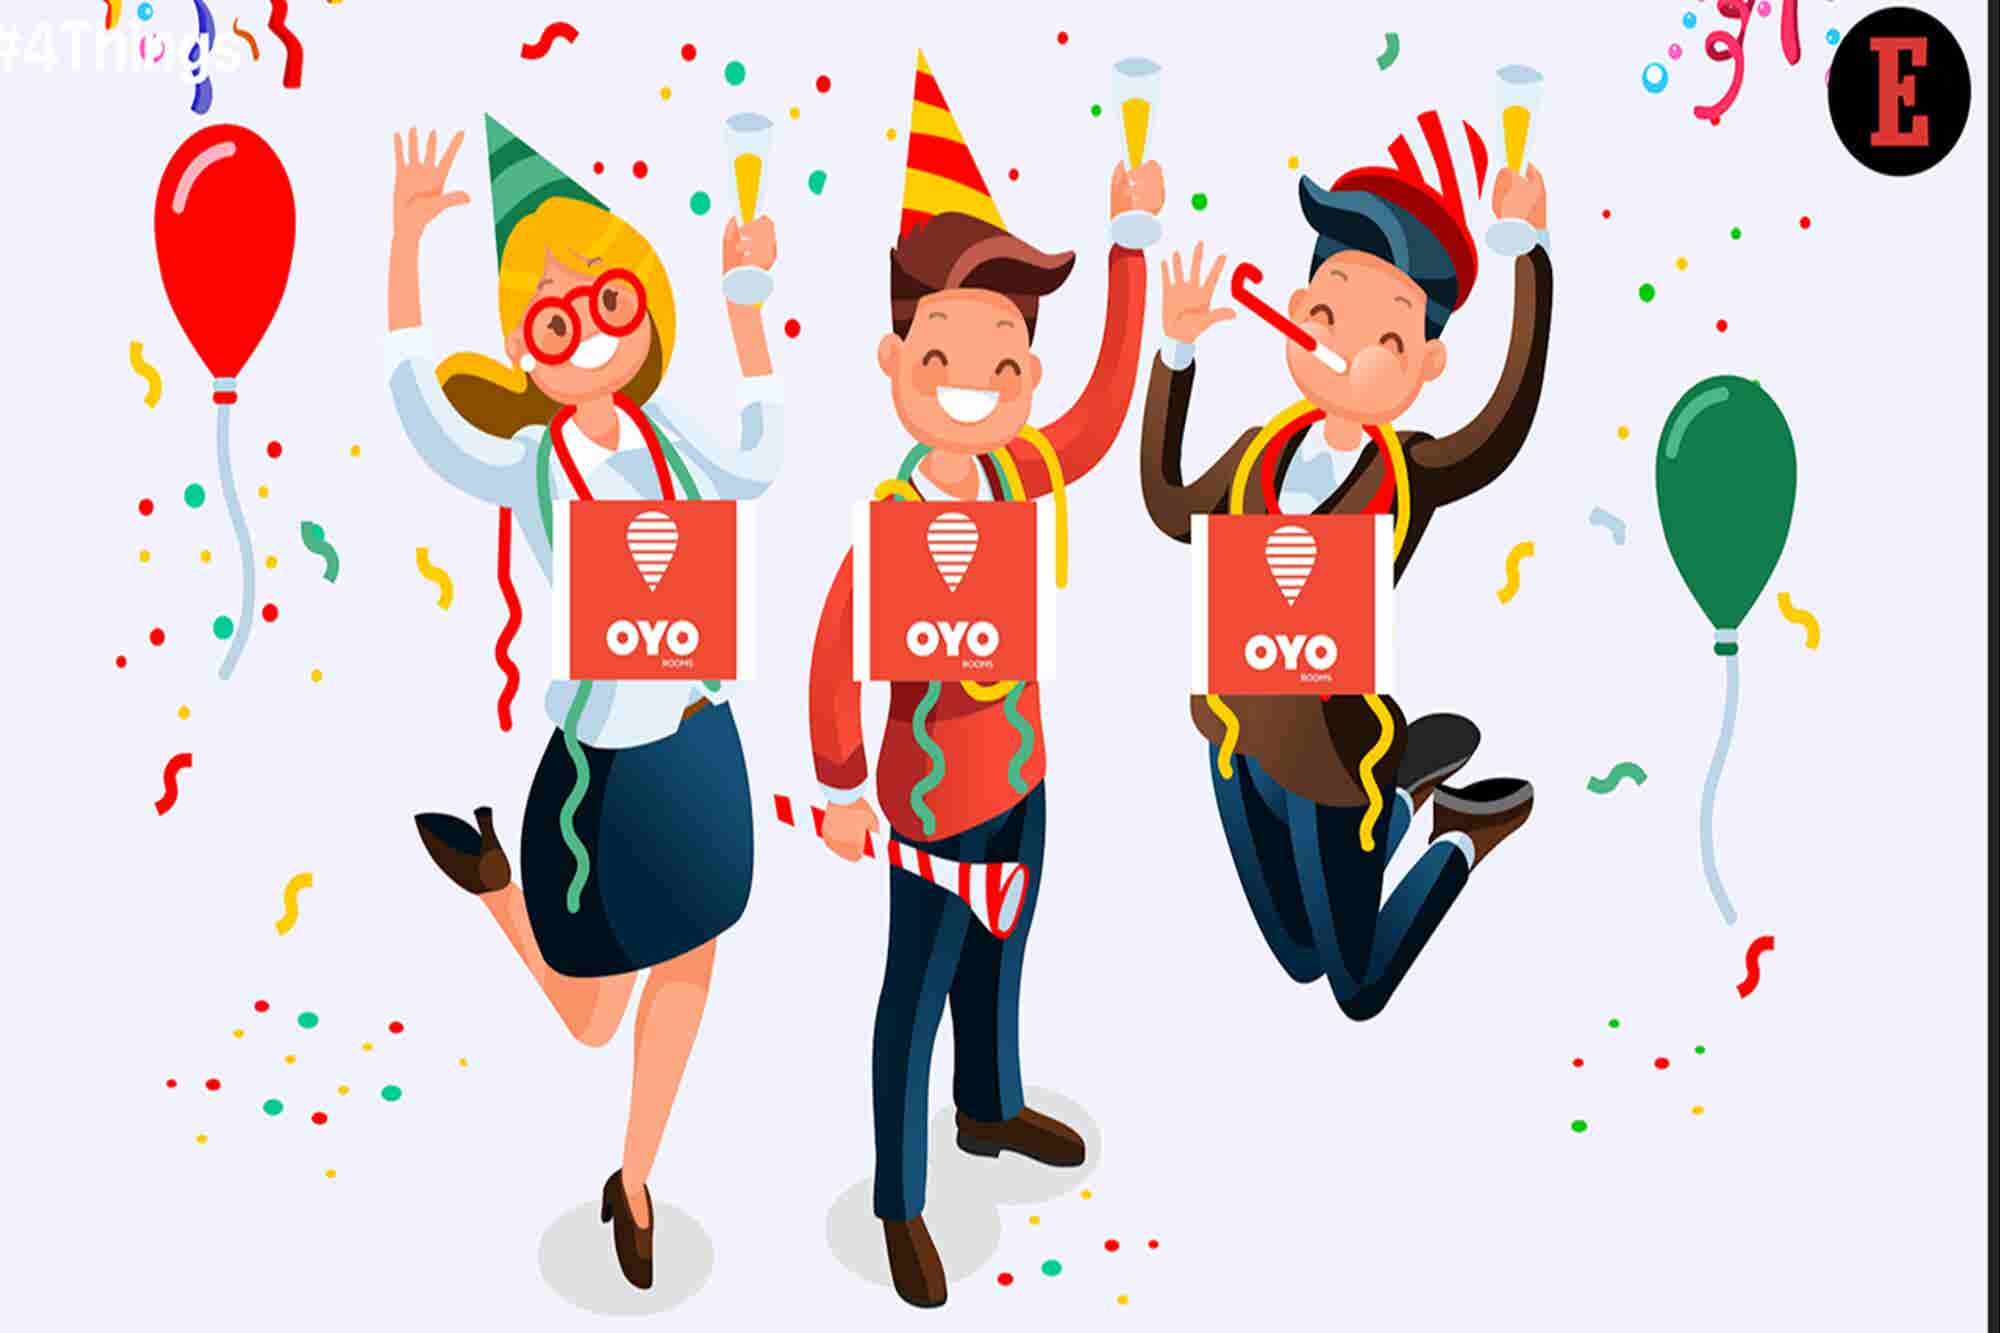 Startup Saturday: Oyo's New Year Gift for Employees & MobiKwik's Revenue Jump